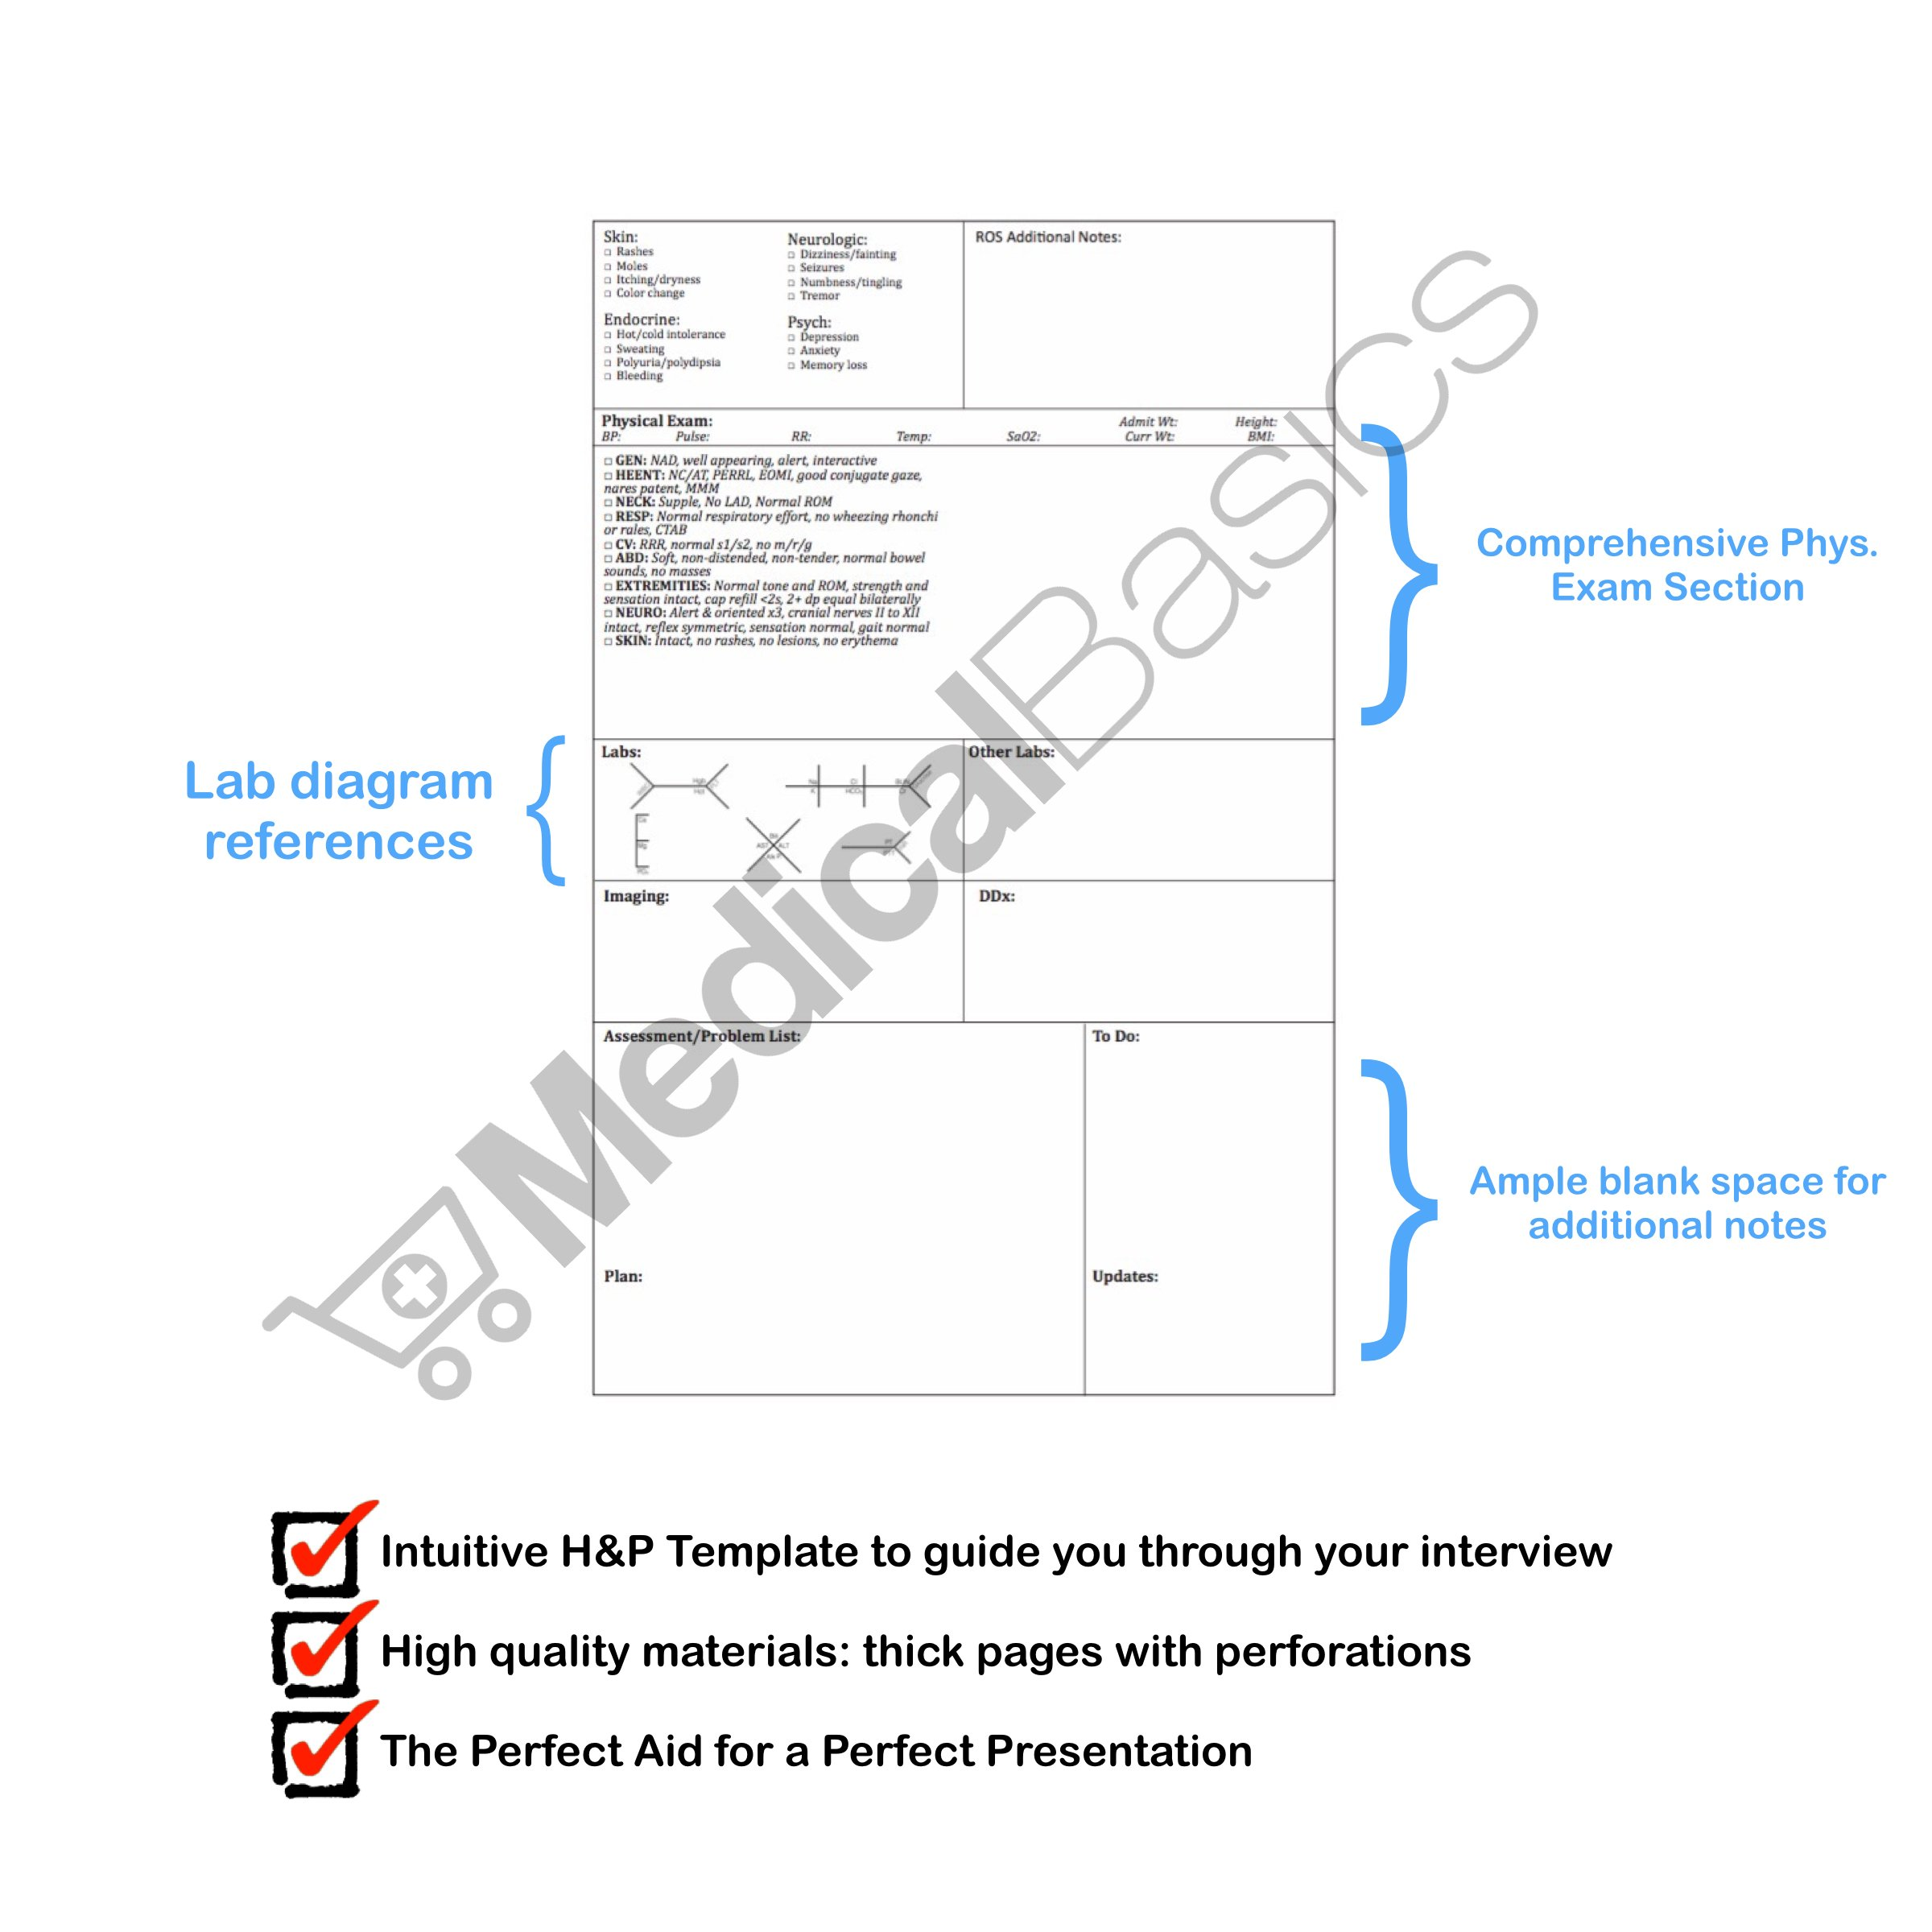 H&P notebook (3 pack) - Medical History and Physical notebook, 100 medical templates with perforations by Medical Basics (Image #4)